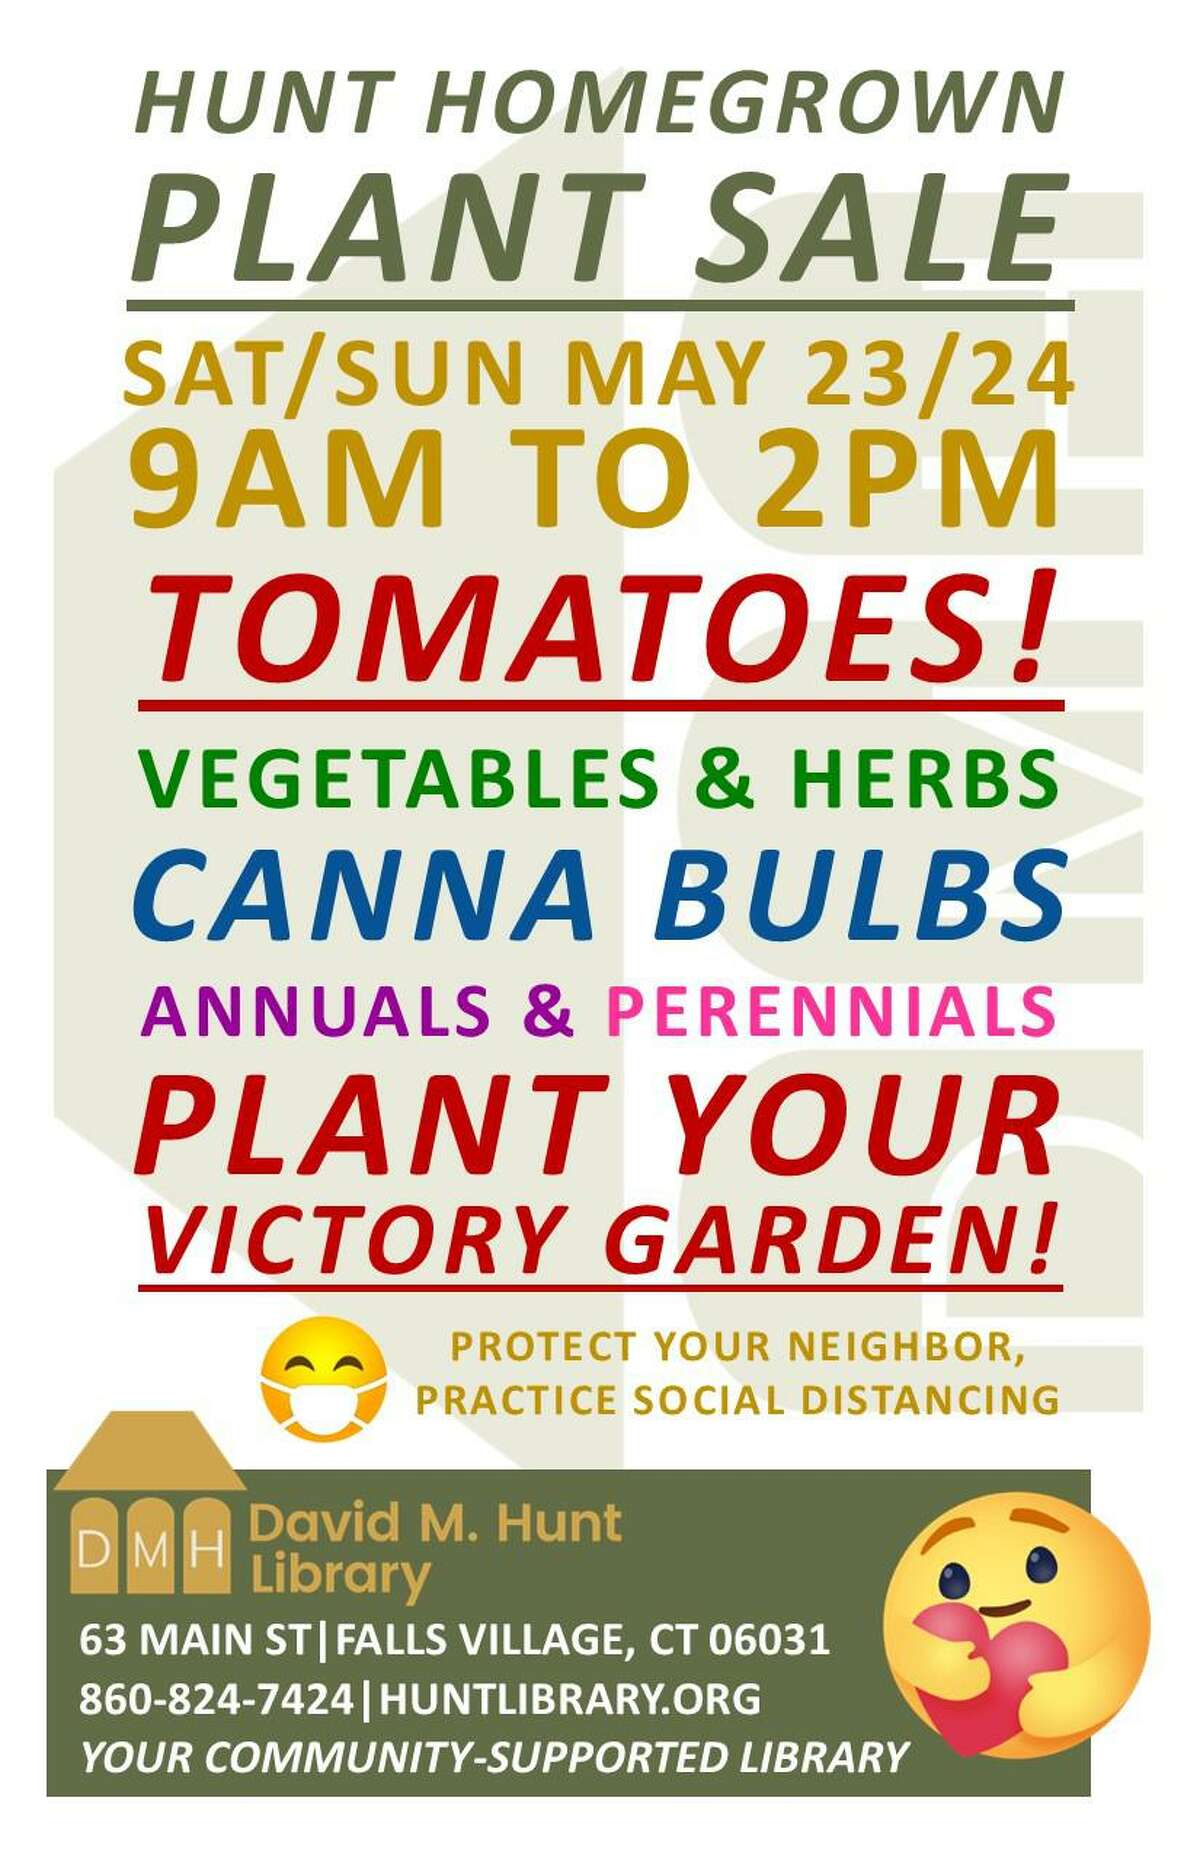 The Hunt Library is holding a Homegrown Victory Garden Plant Sale May 23-24.